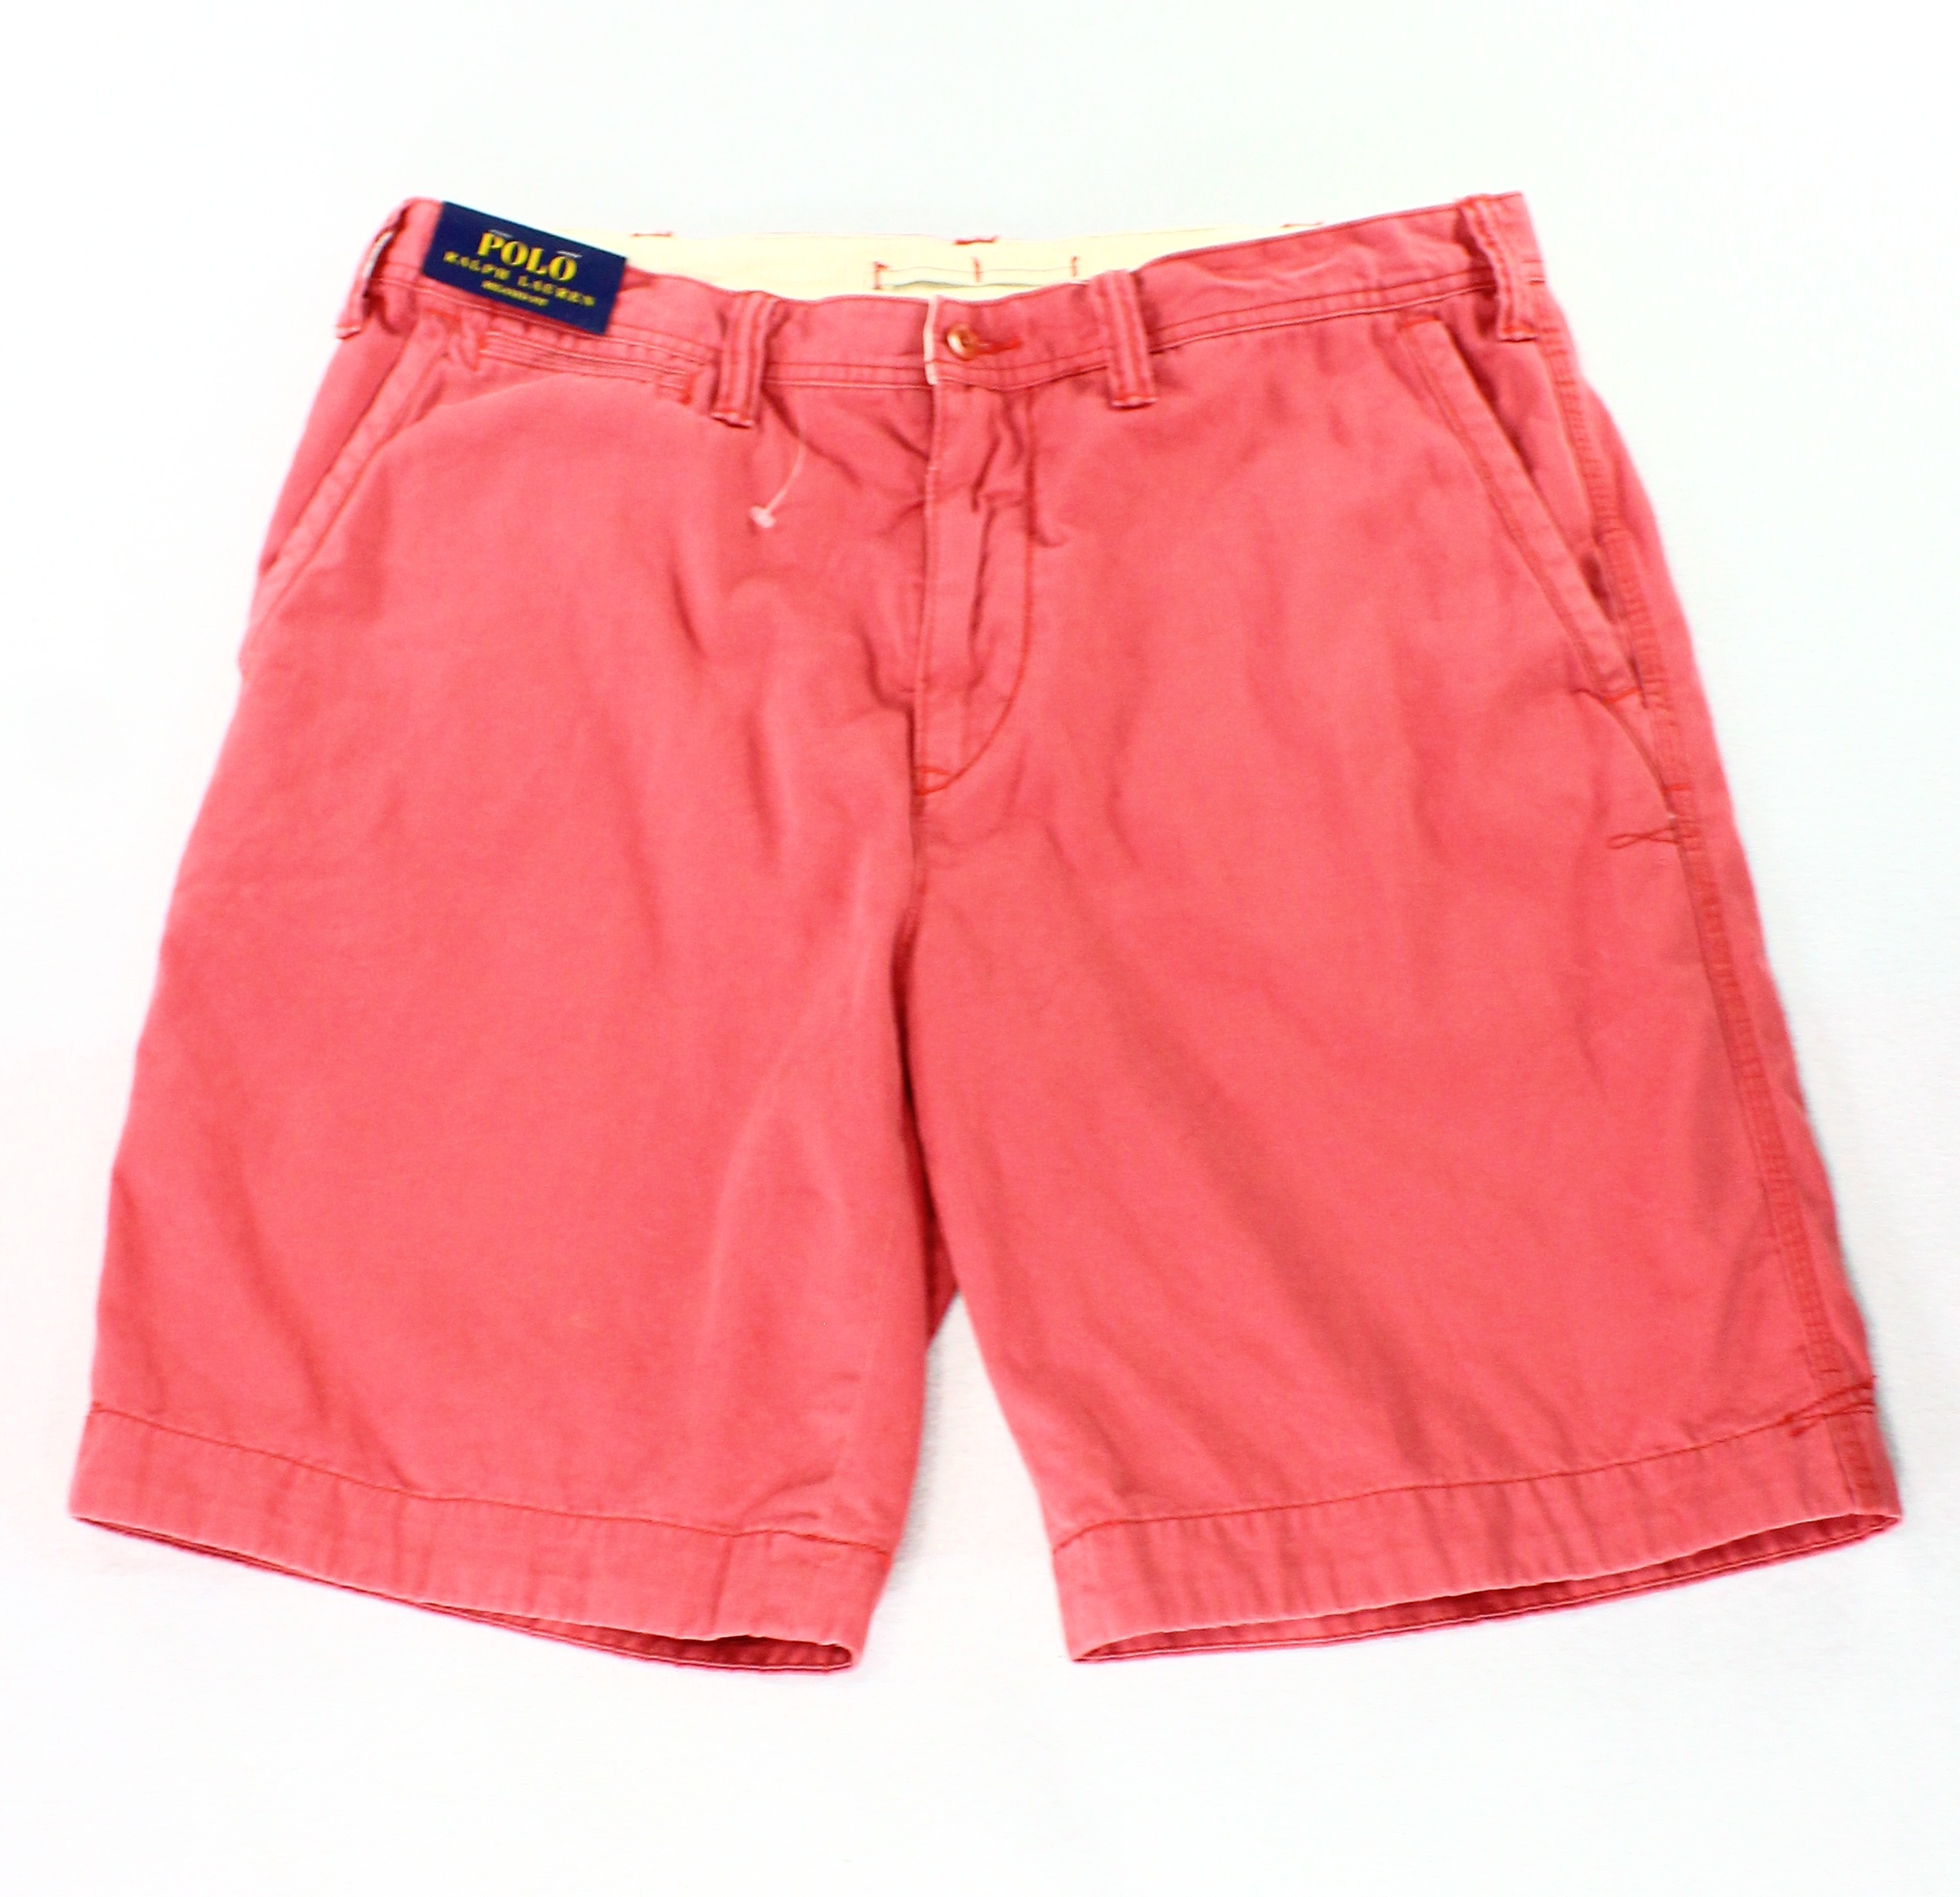 Polo Ralph Lauren Mens Shorts Relaxed Fit Flat Front Casual ...